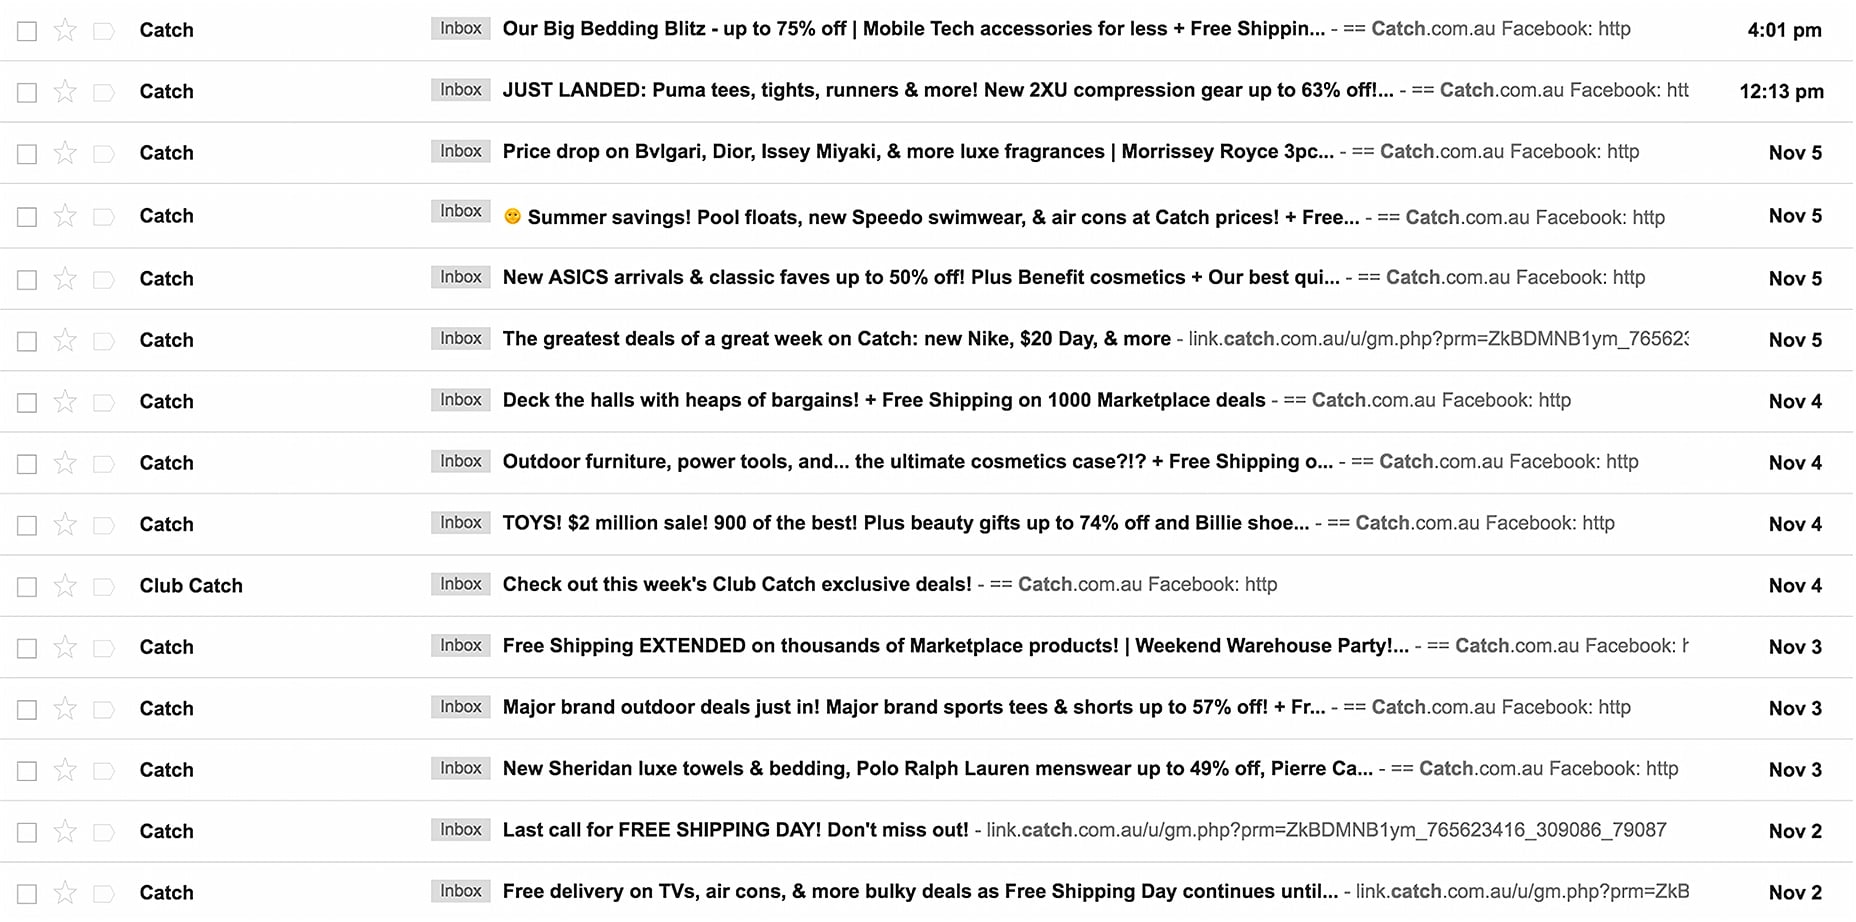 Catch Emails